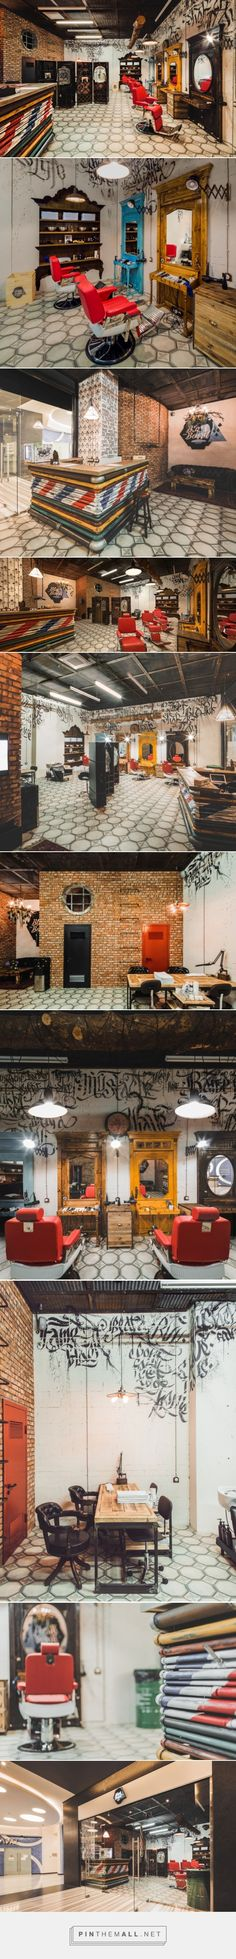 black beard barbershop by bv studio moscow russia barbershop designbarbershop ideasmoscow - Barber Shop Design Ideas